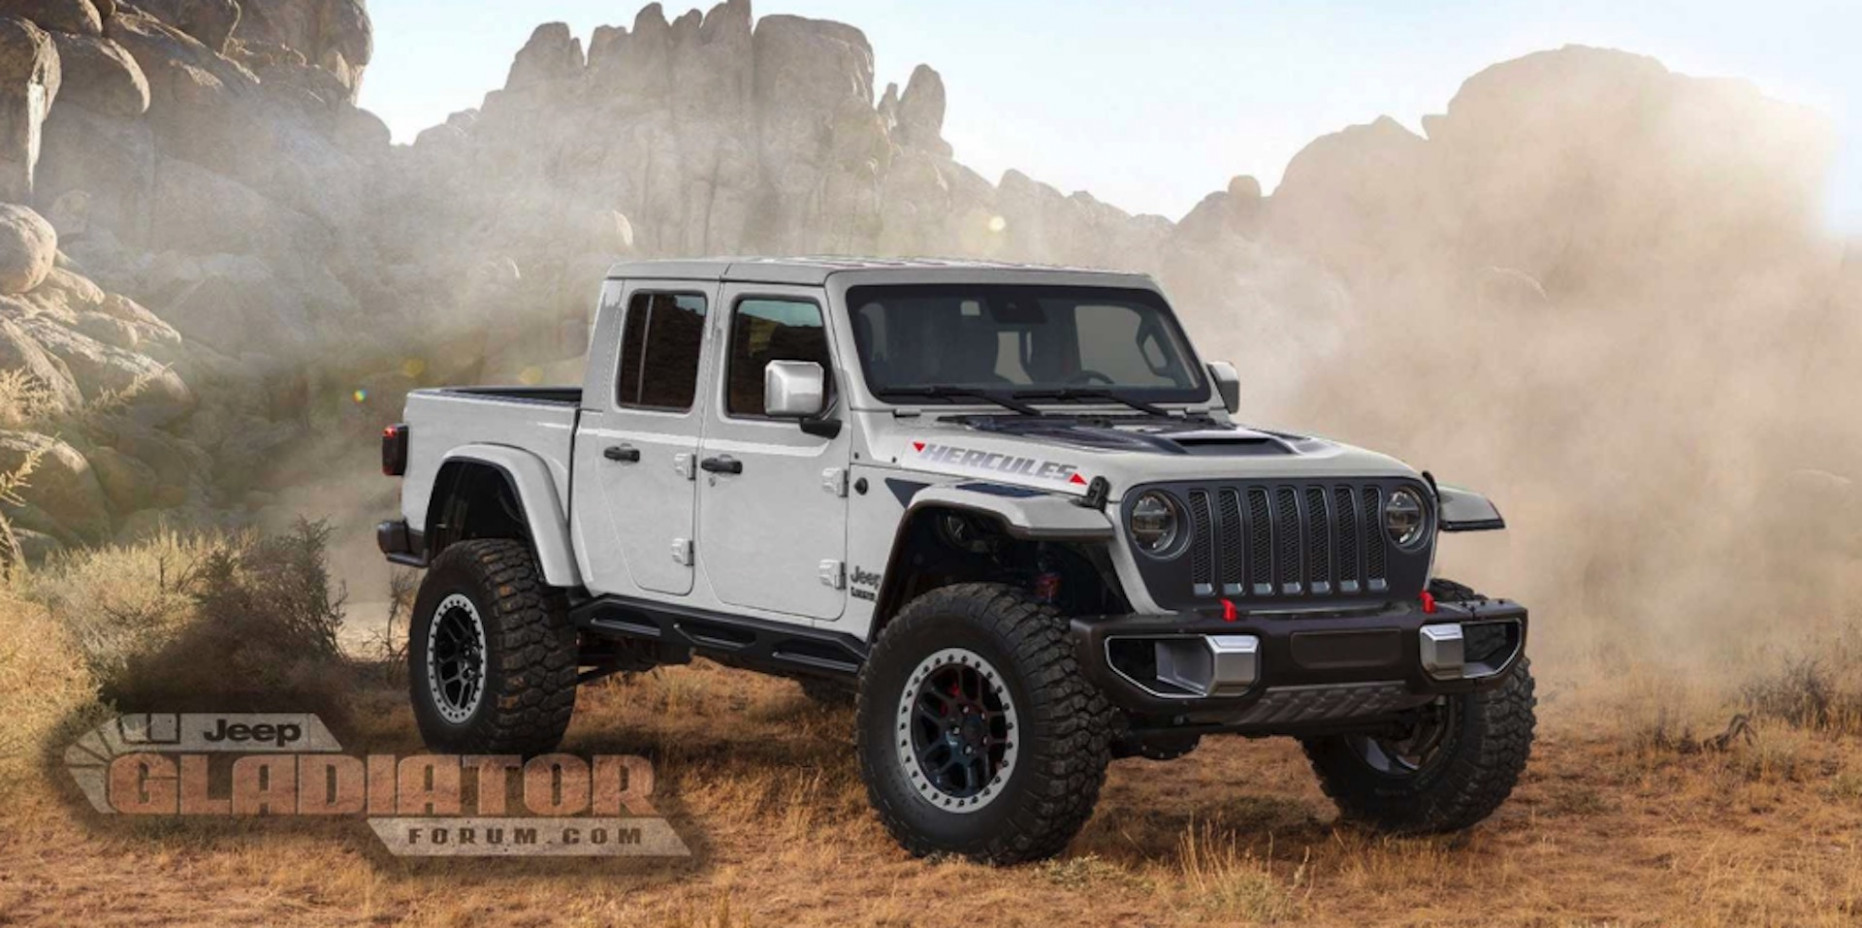 Images What Is The Price Of The 2022 Jeep Gladiator